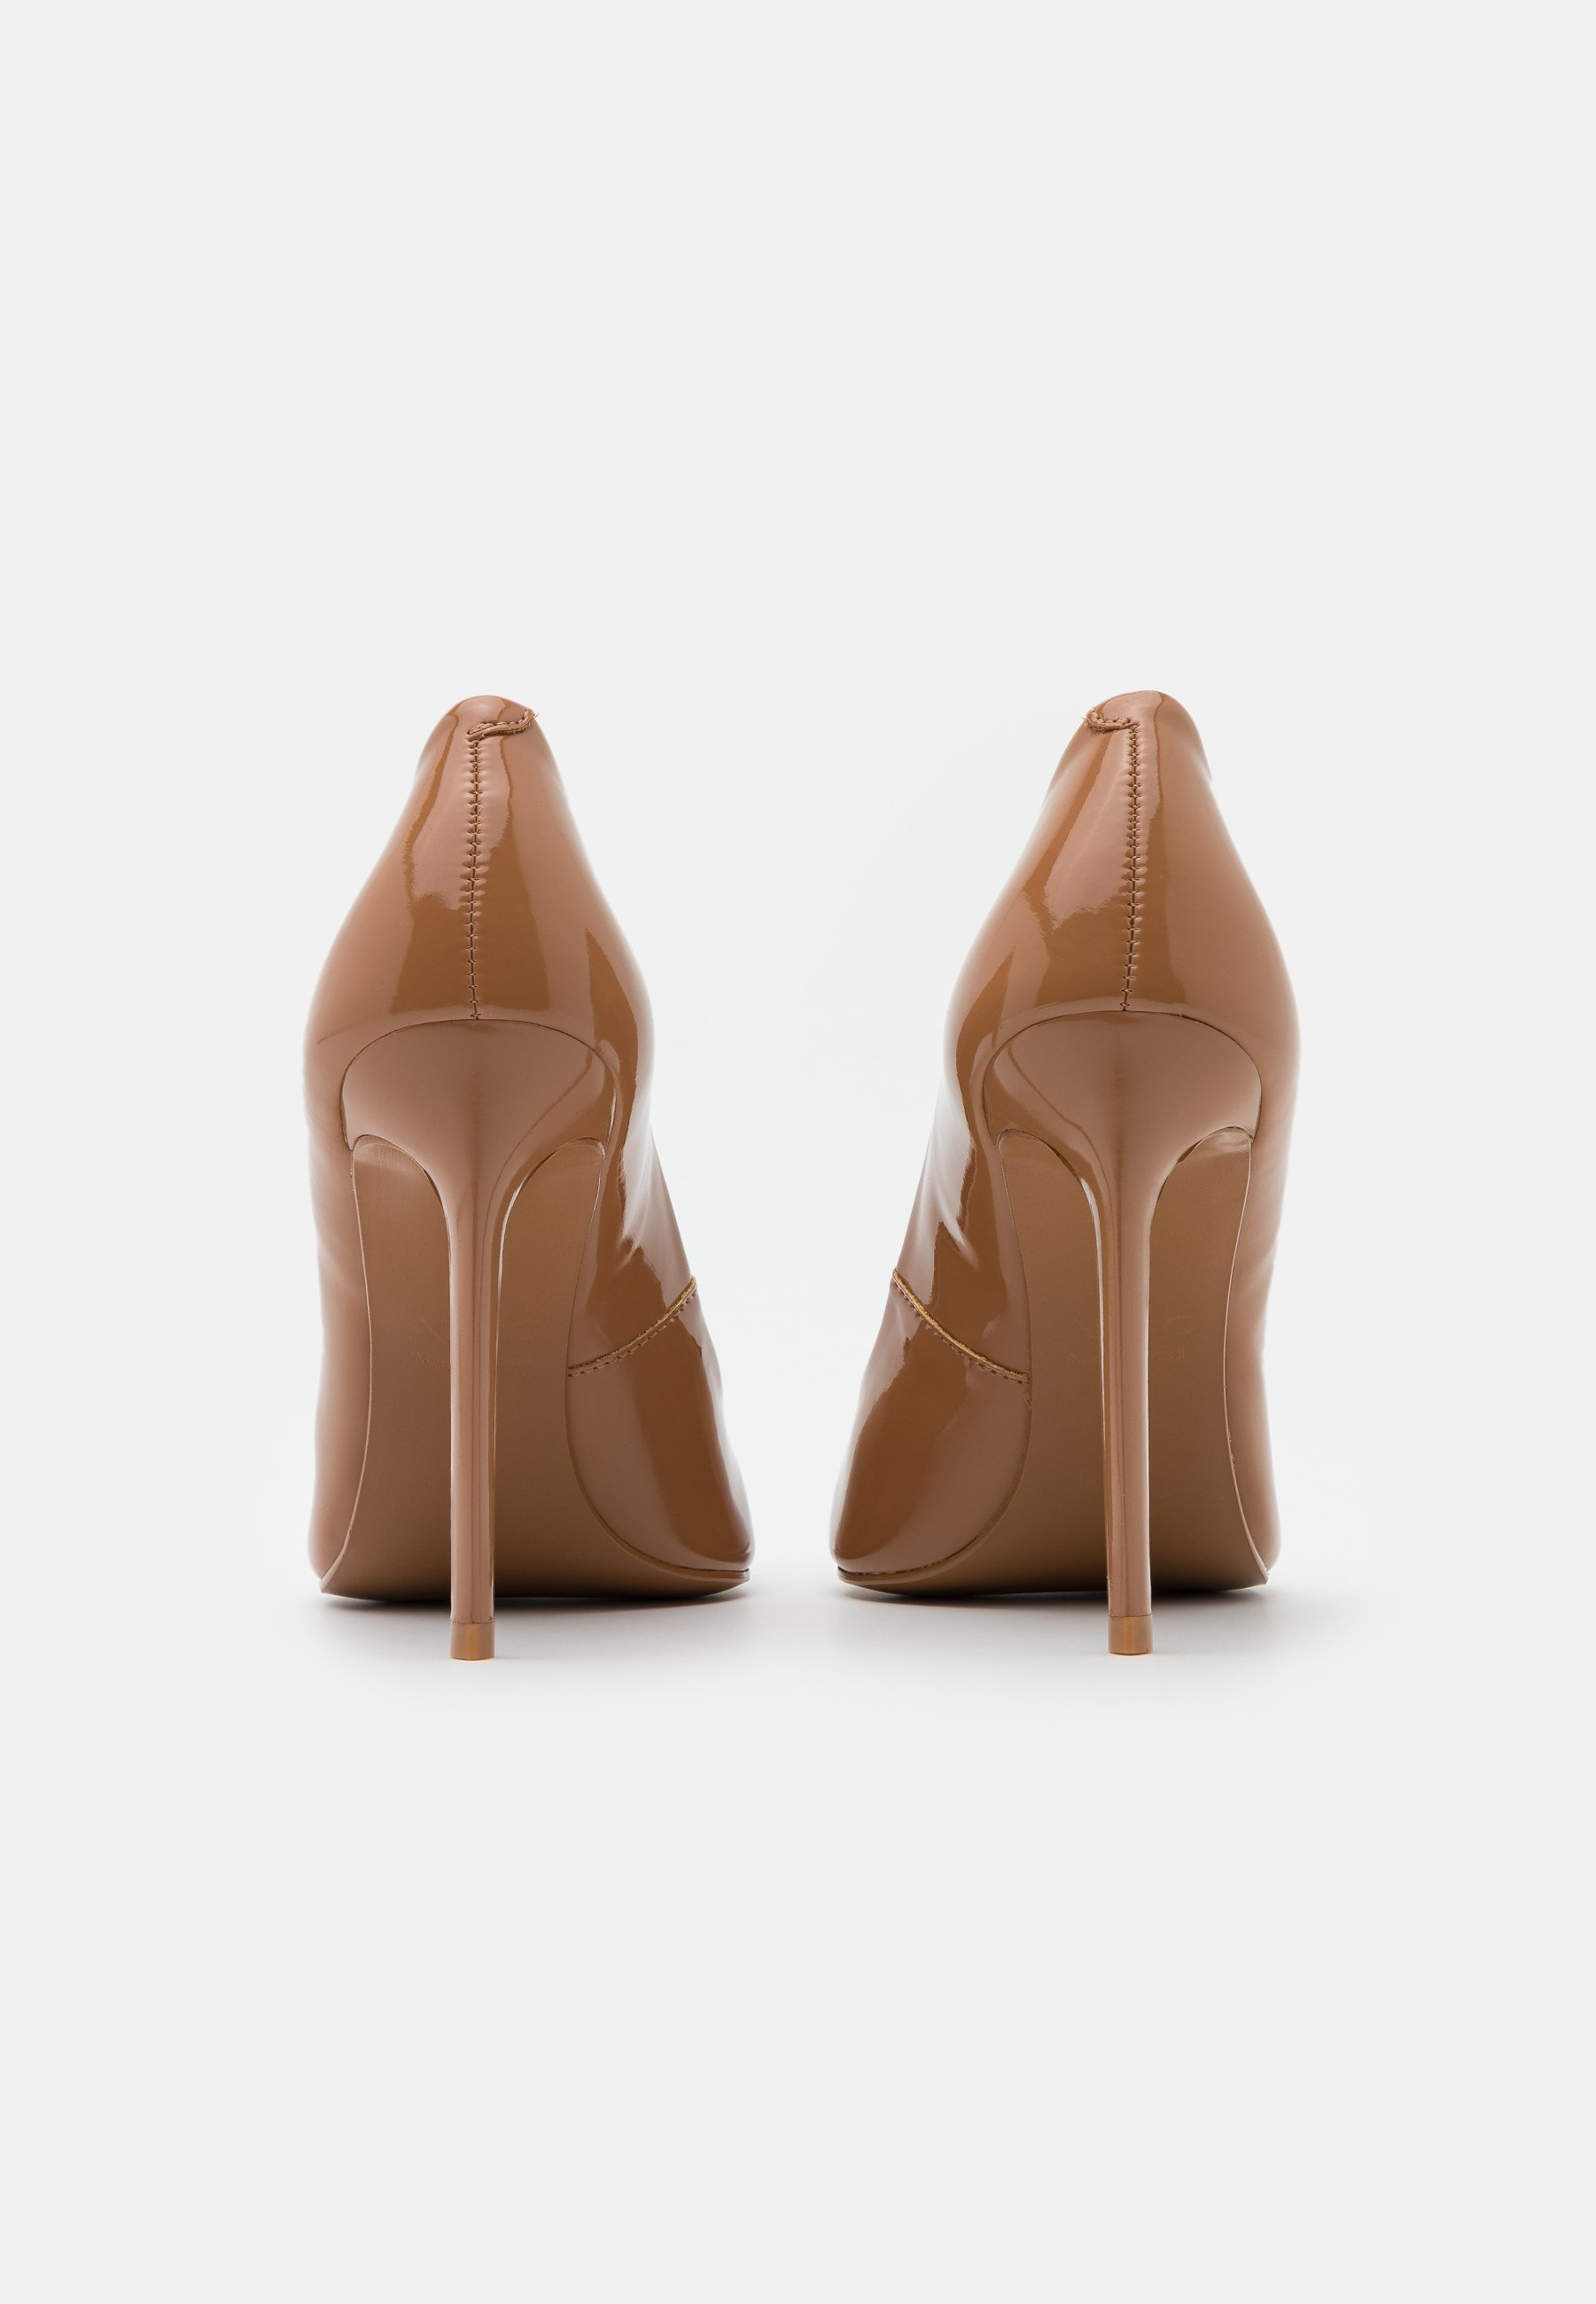 ALDO COMPLETA High Heel Pumps beige